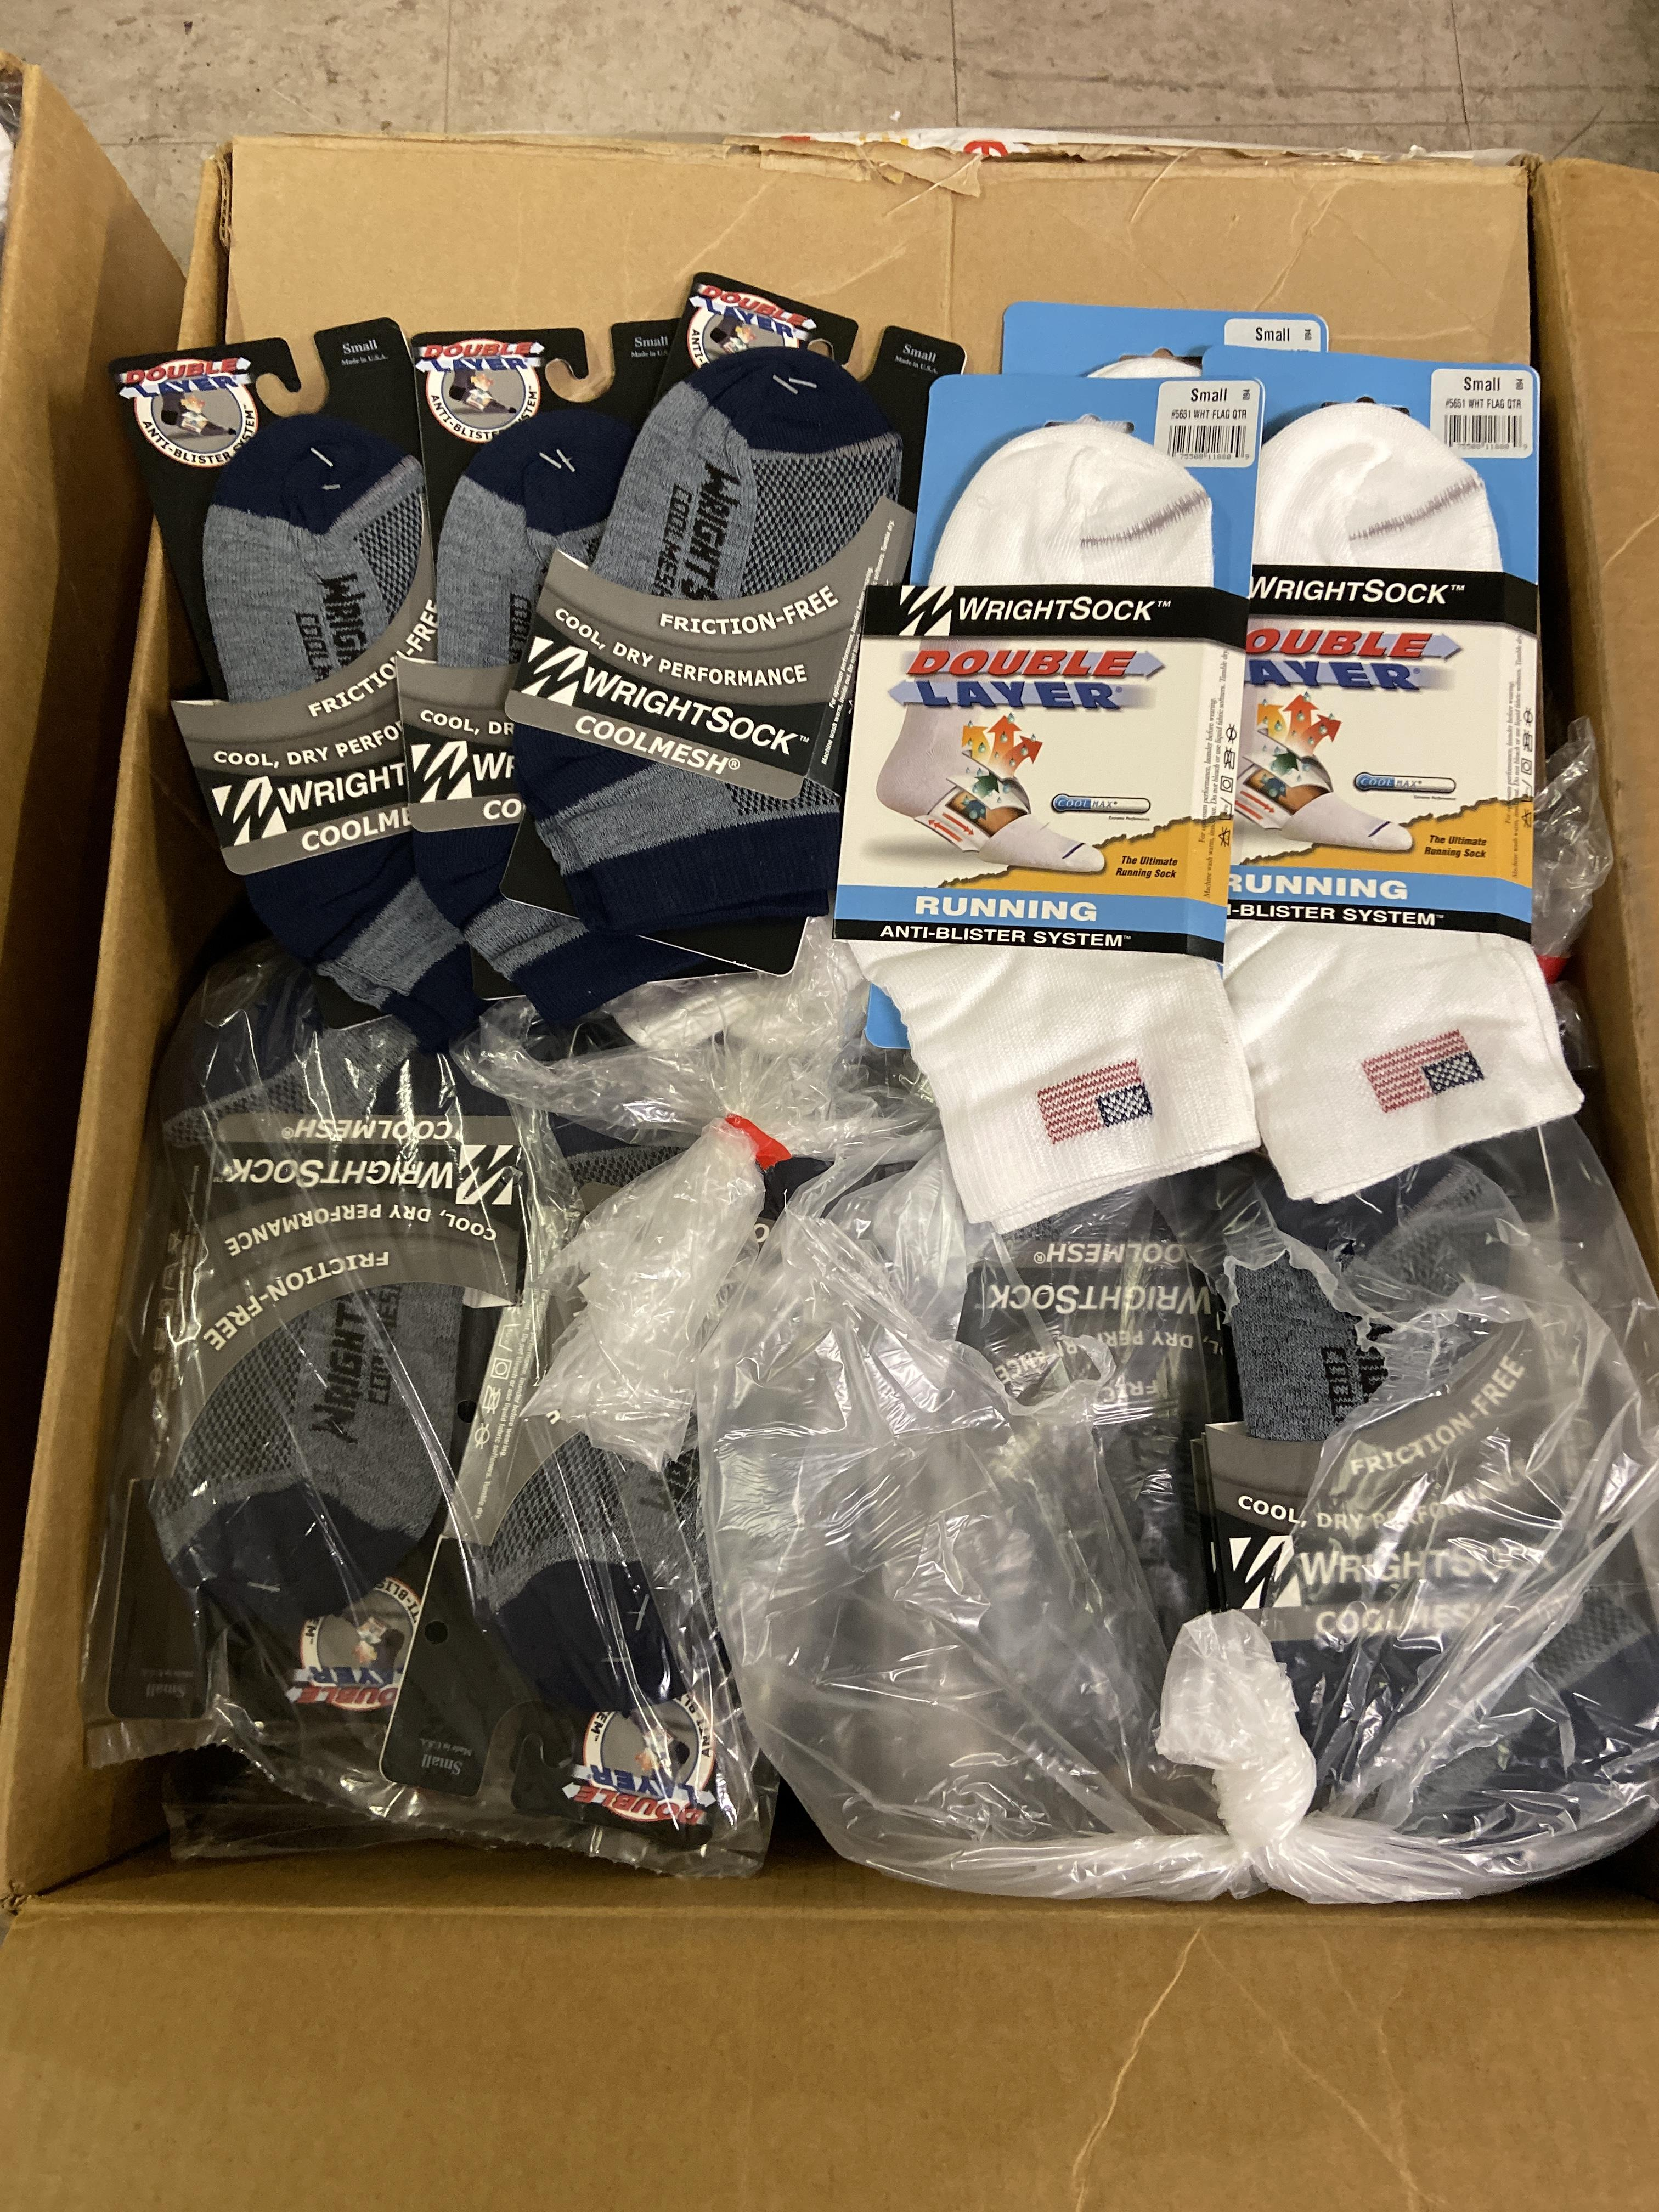 Lot 12 - 250+ packs of New Socks, Wrightsock Running and Coolmesh, Double Layer, Various Colors Lot is